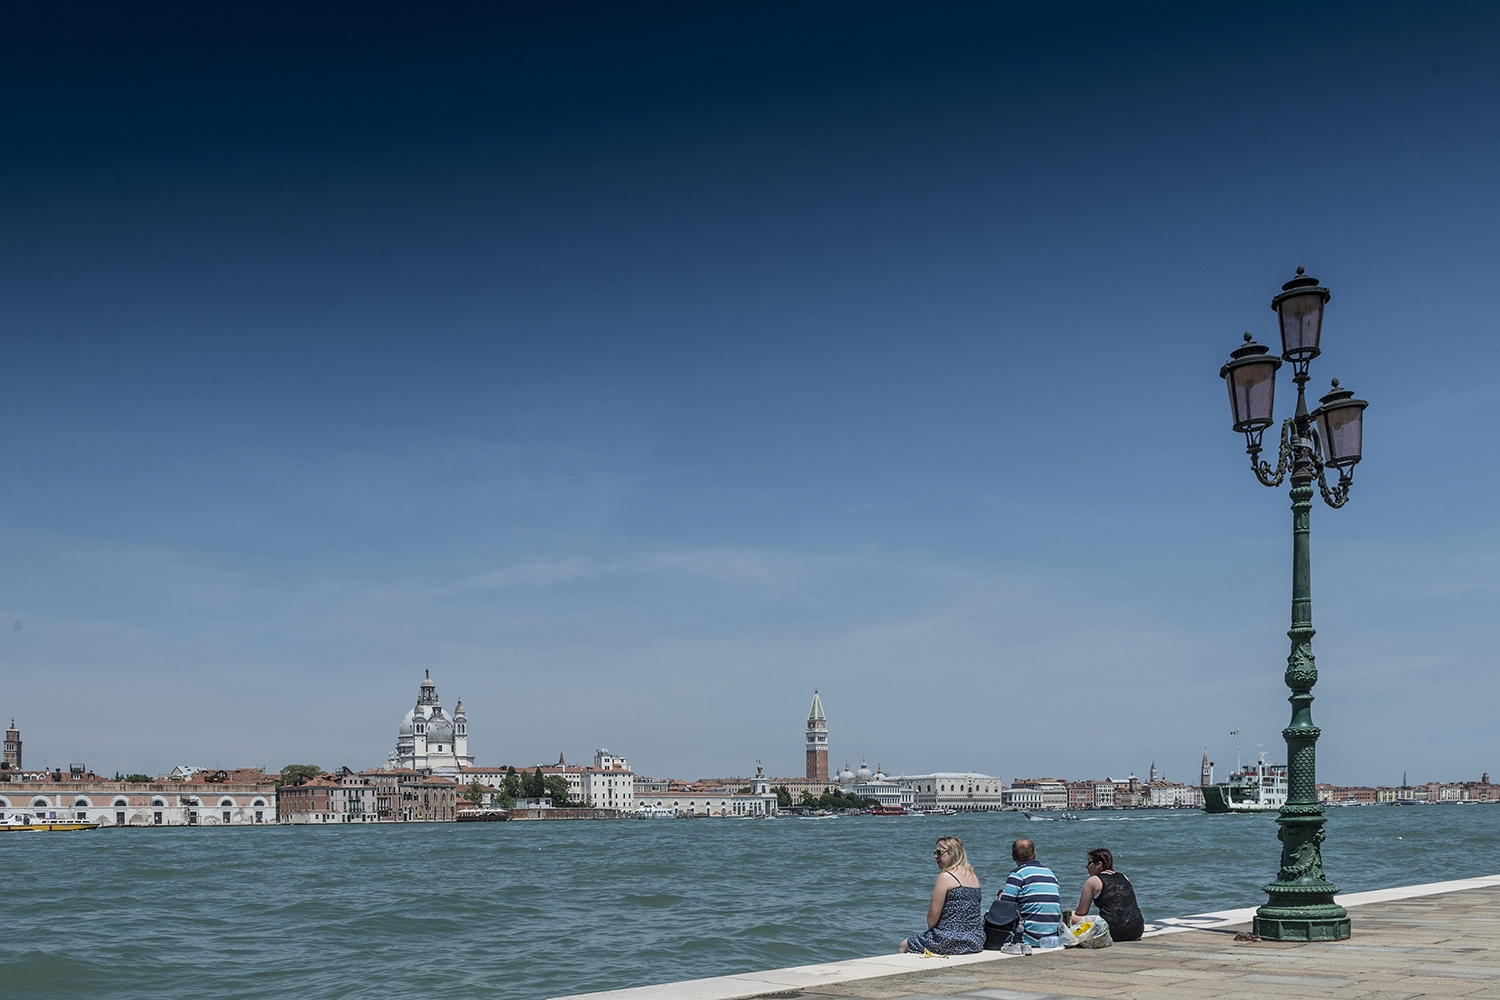 watching Venice from La Giudecca